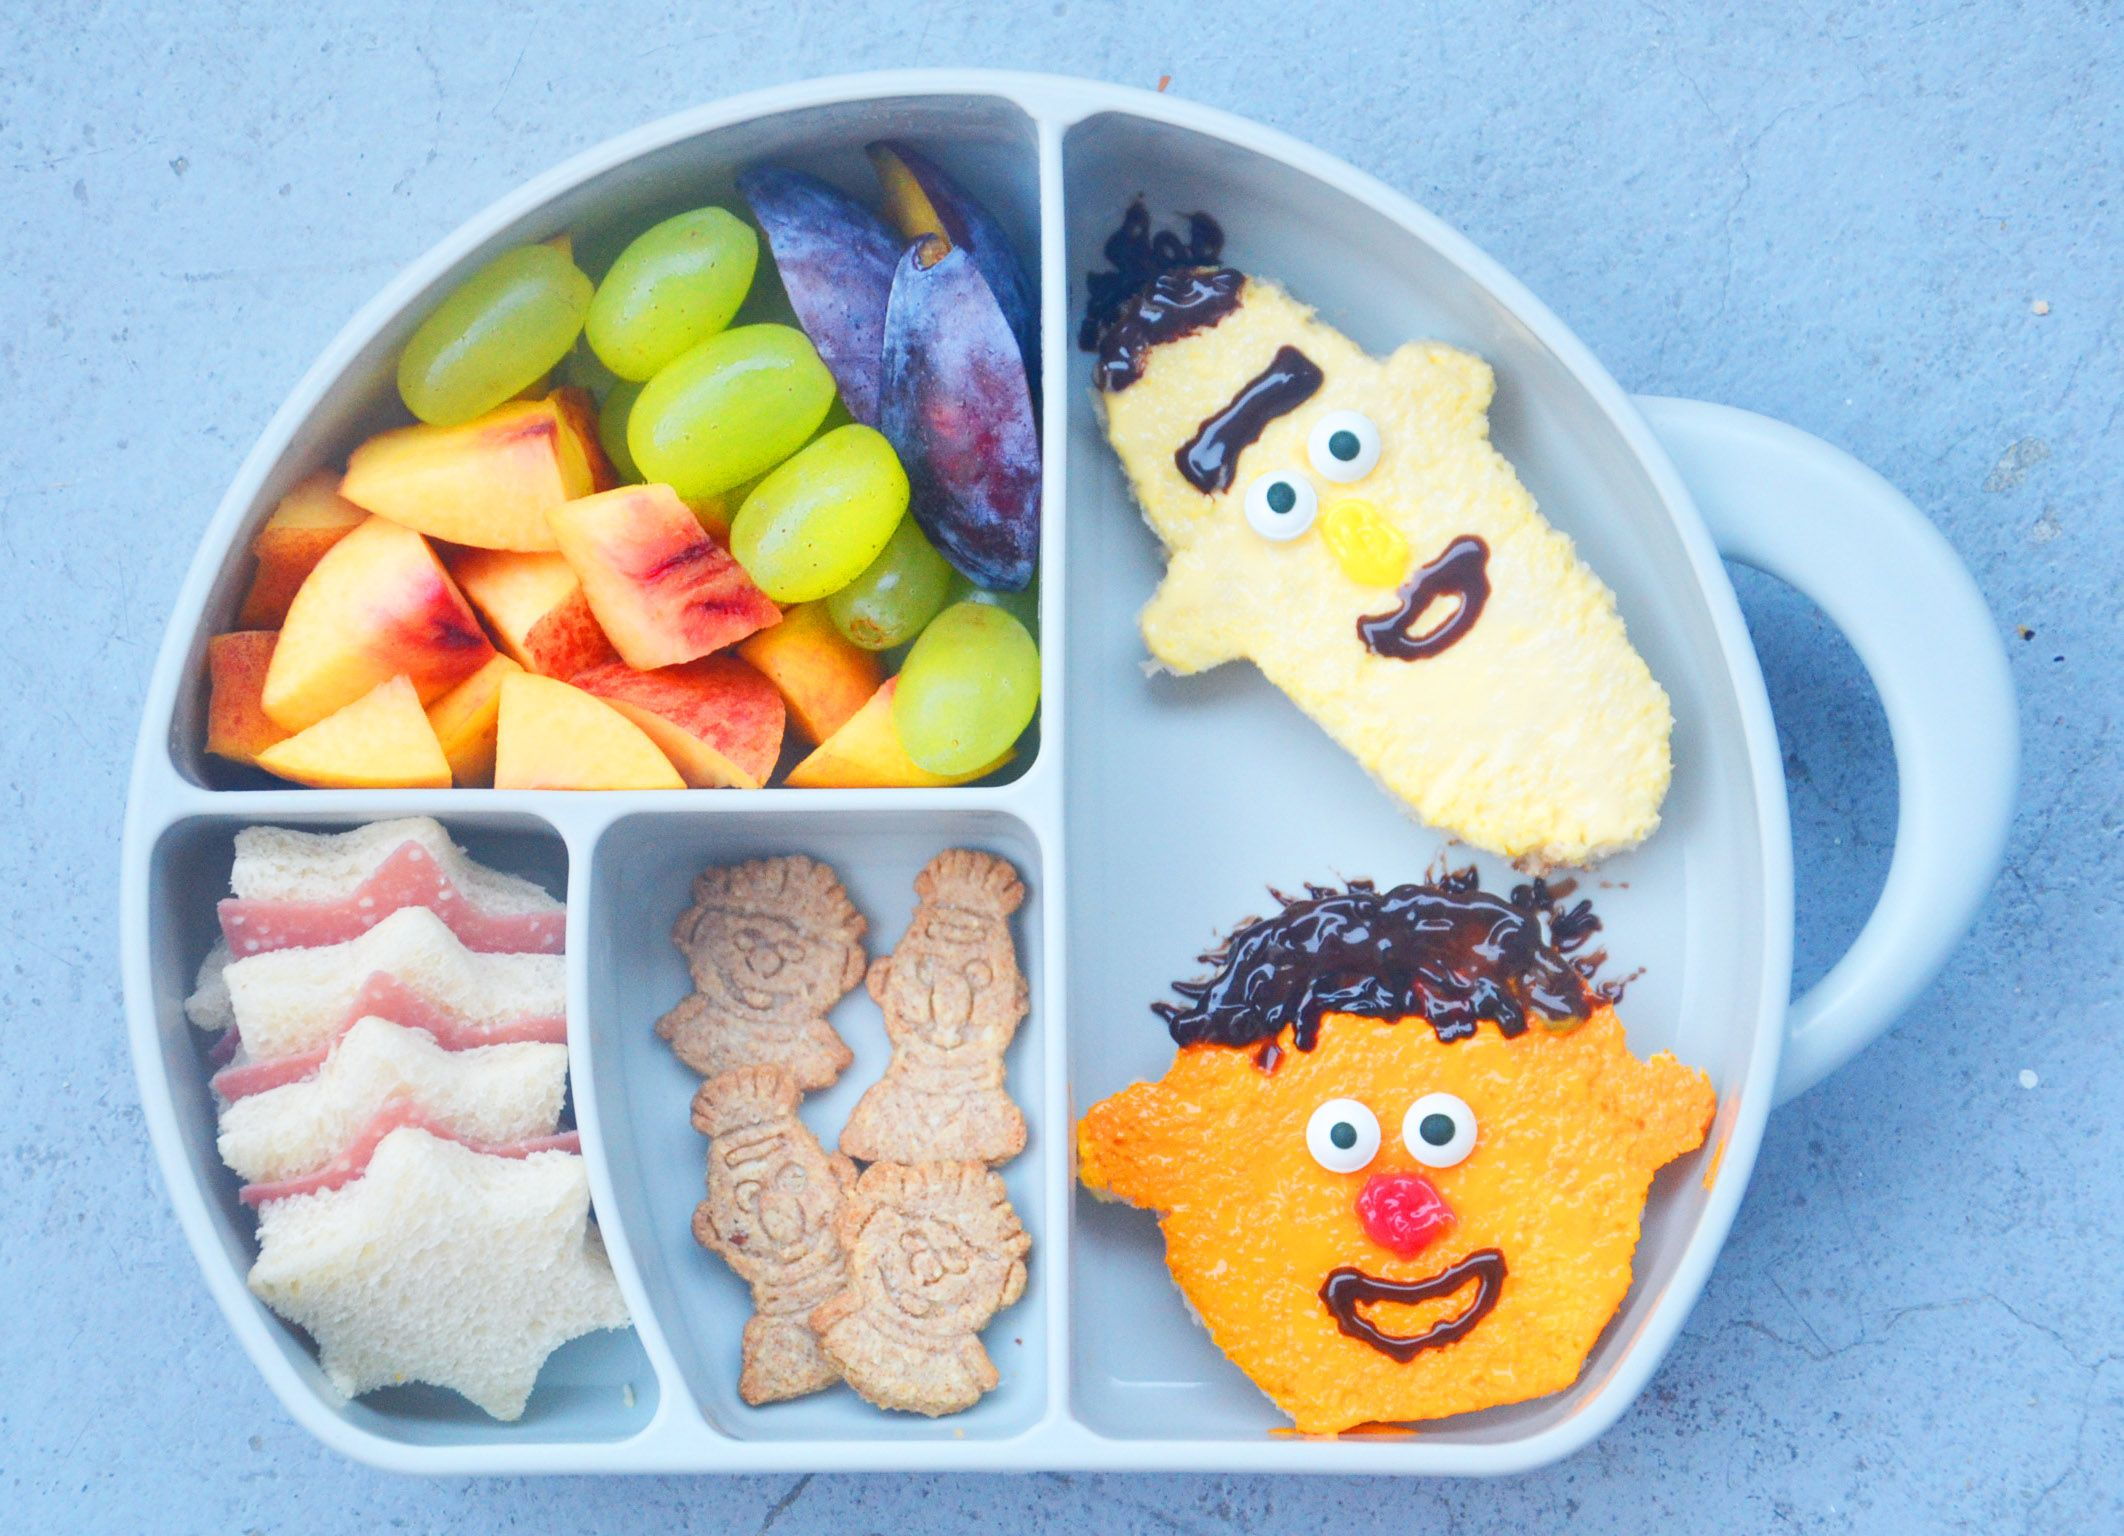 Brotbox Kinder Ernie Und Bernd Bentobox Bentobox Ideas Brotdose Mal